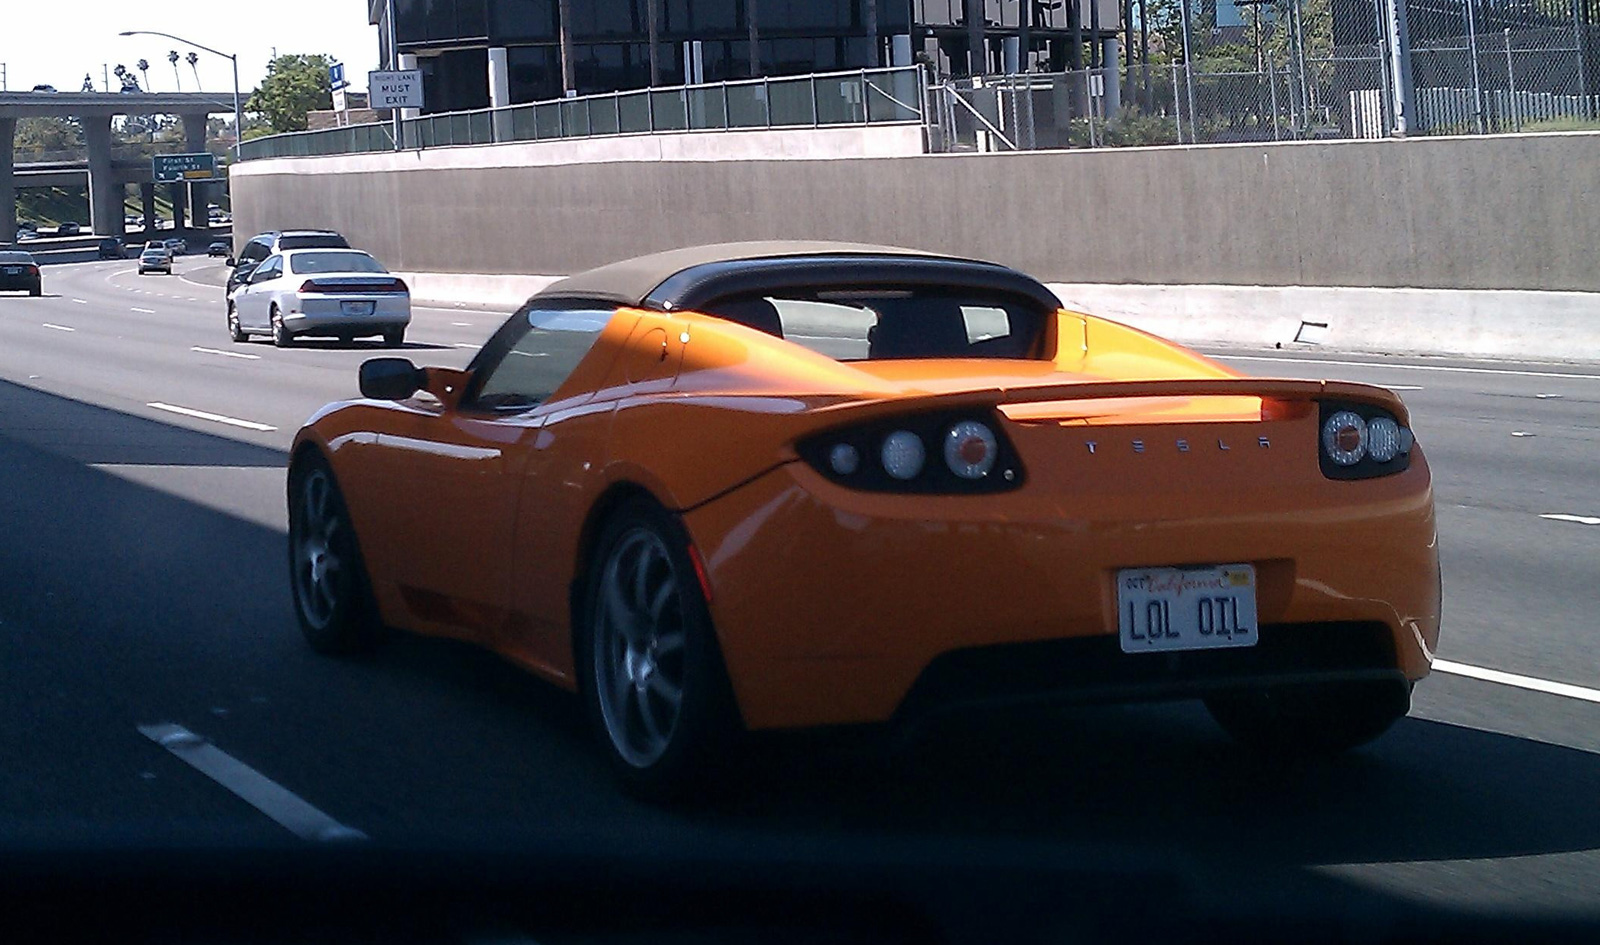 tesla-roadster-LOL-OIL